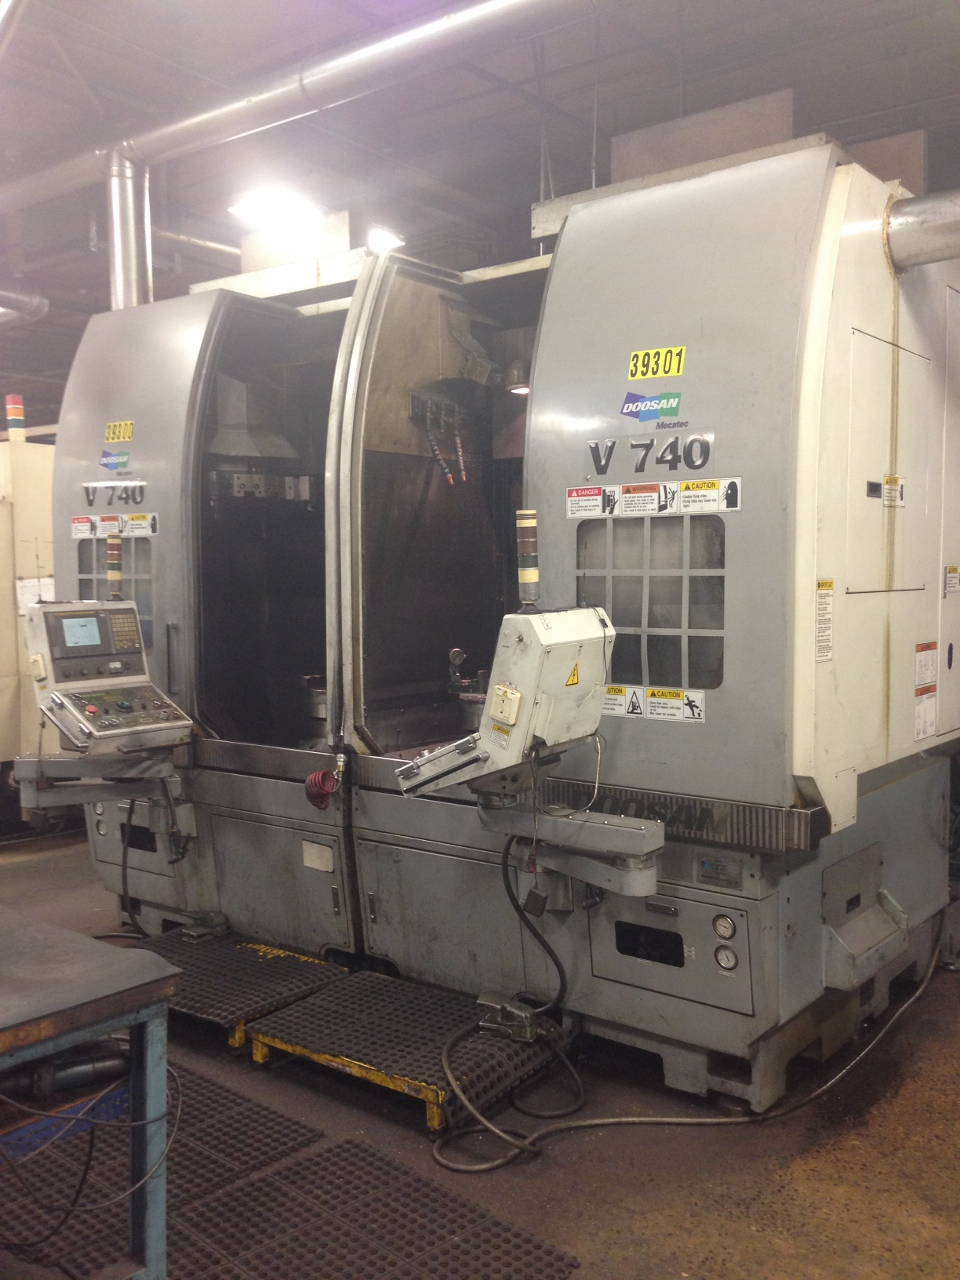 "2 Available, Doosan V740 Vertical Lathe, 28.7"" Turning Diameter, 29.5"" Length, 16"" Chuck"